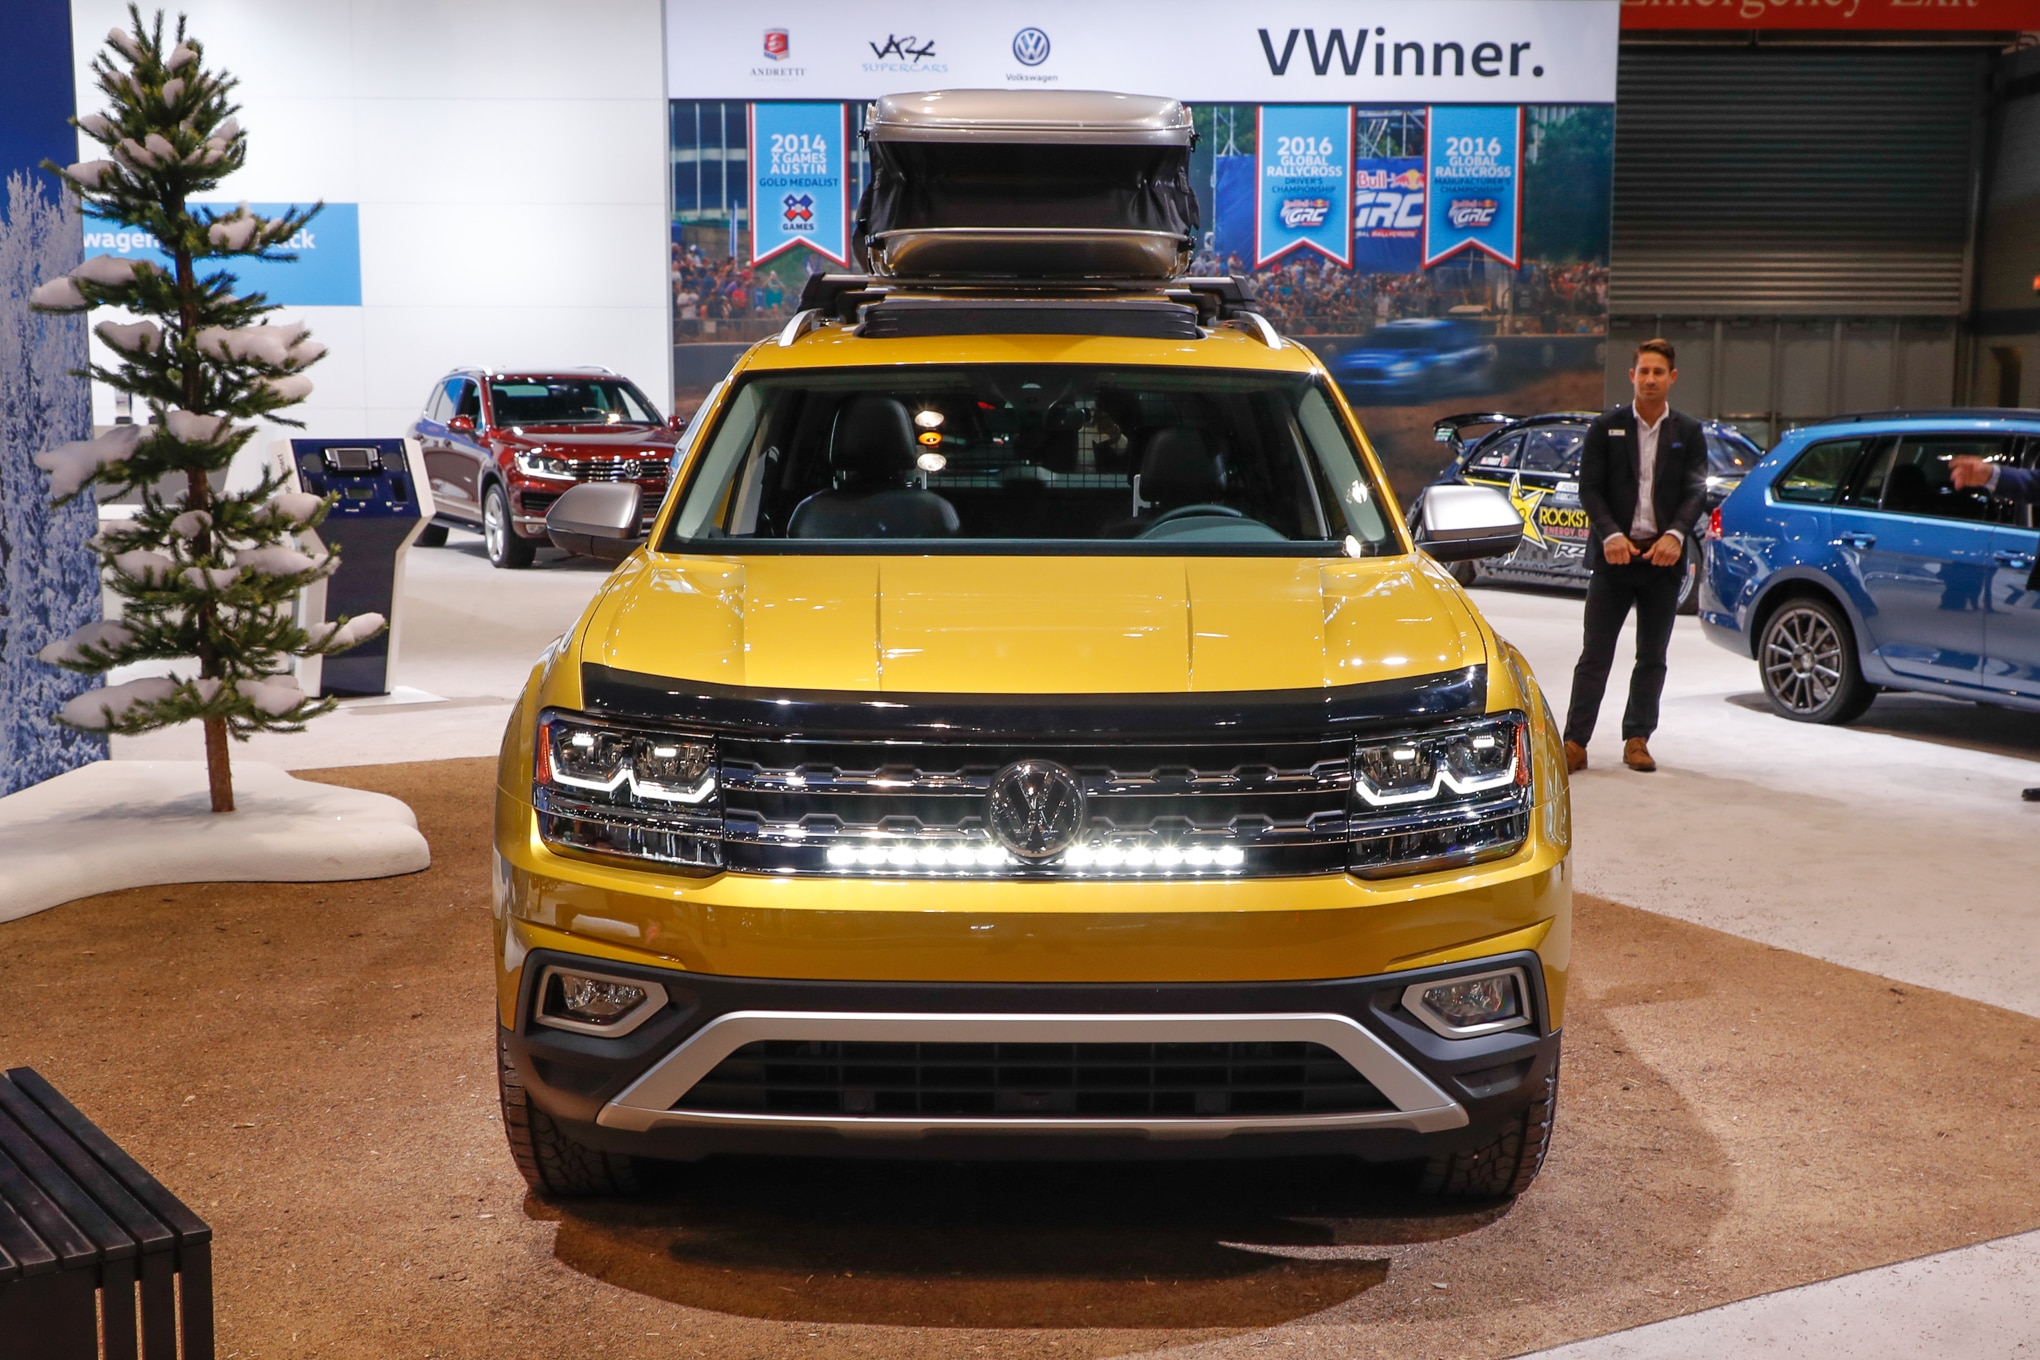 2018 Volkswagen Atlas Weekend Edition Concept is Ready to Road Trip | Automobile Magazine